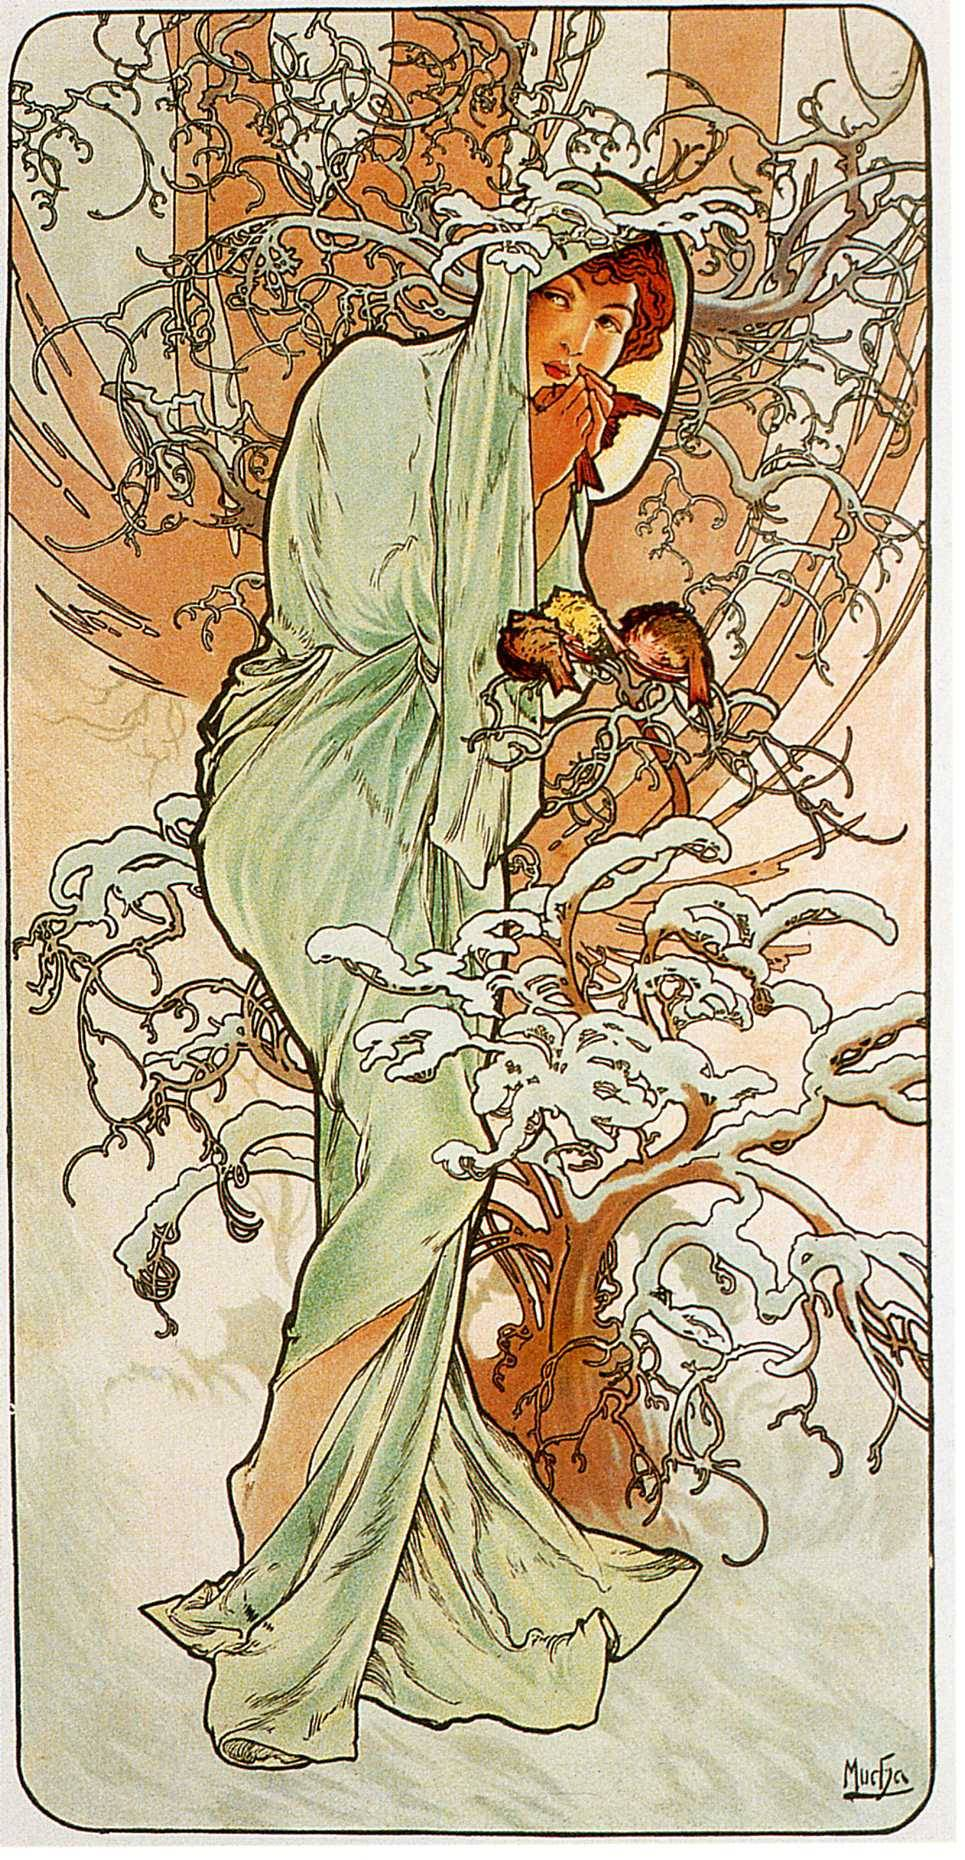 Winter (1896) by Mucha